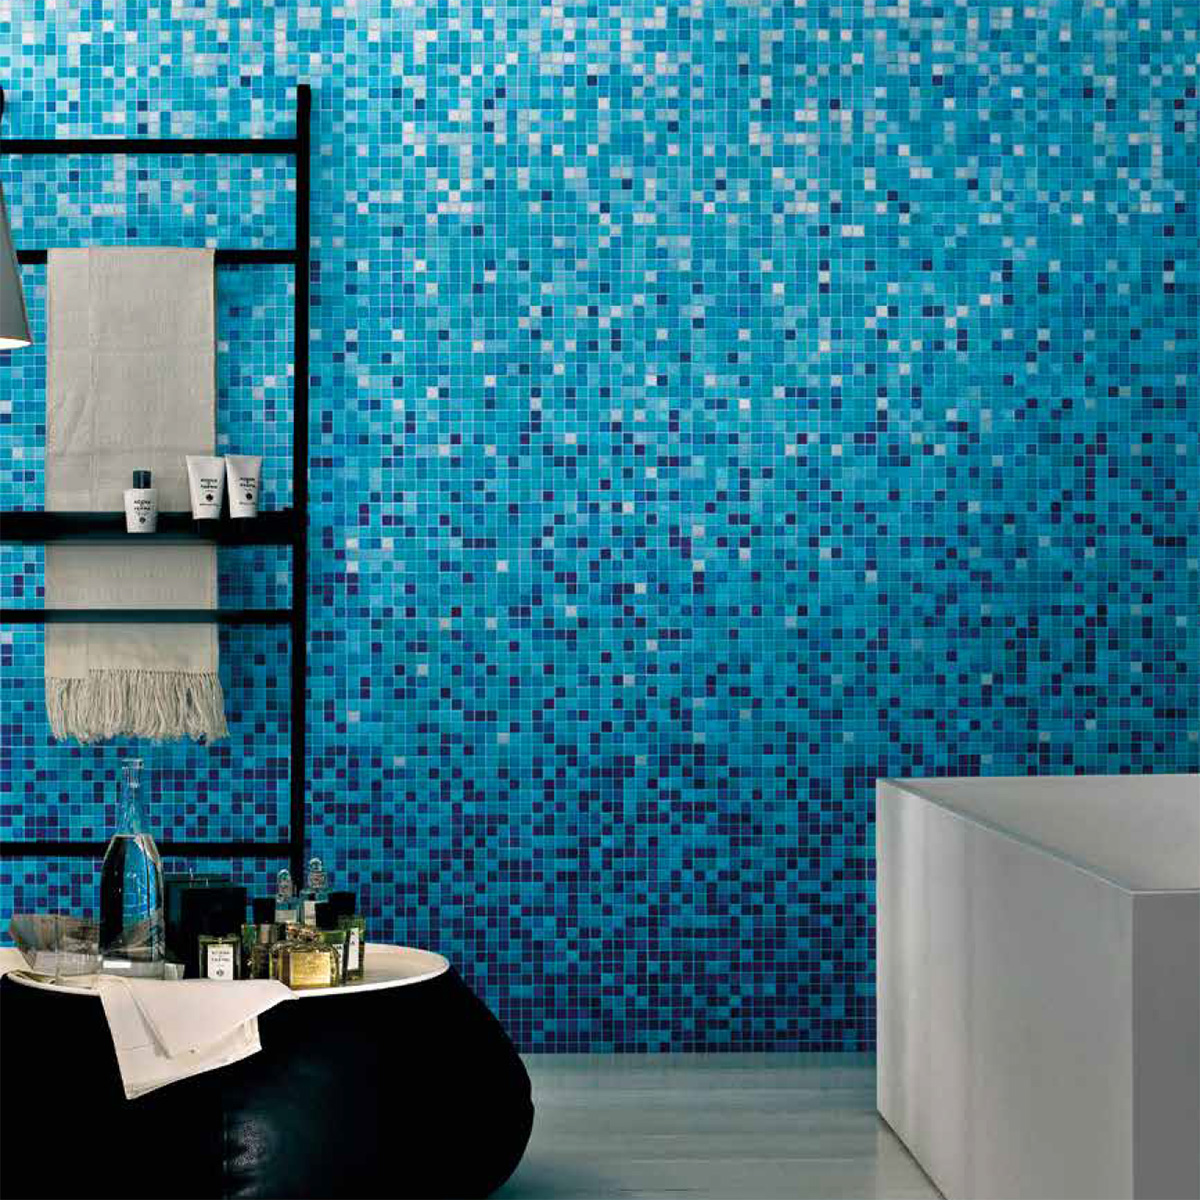 Exquisite Bathroom Mosaic Tiles